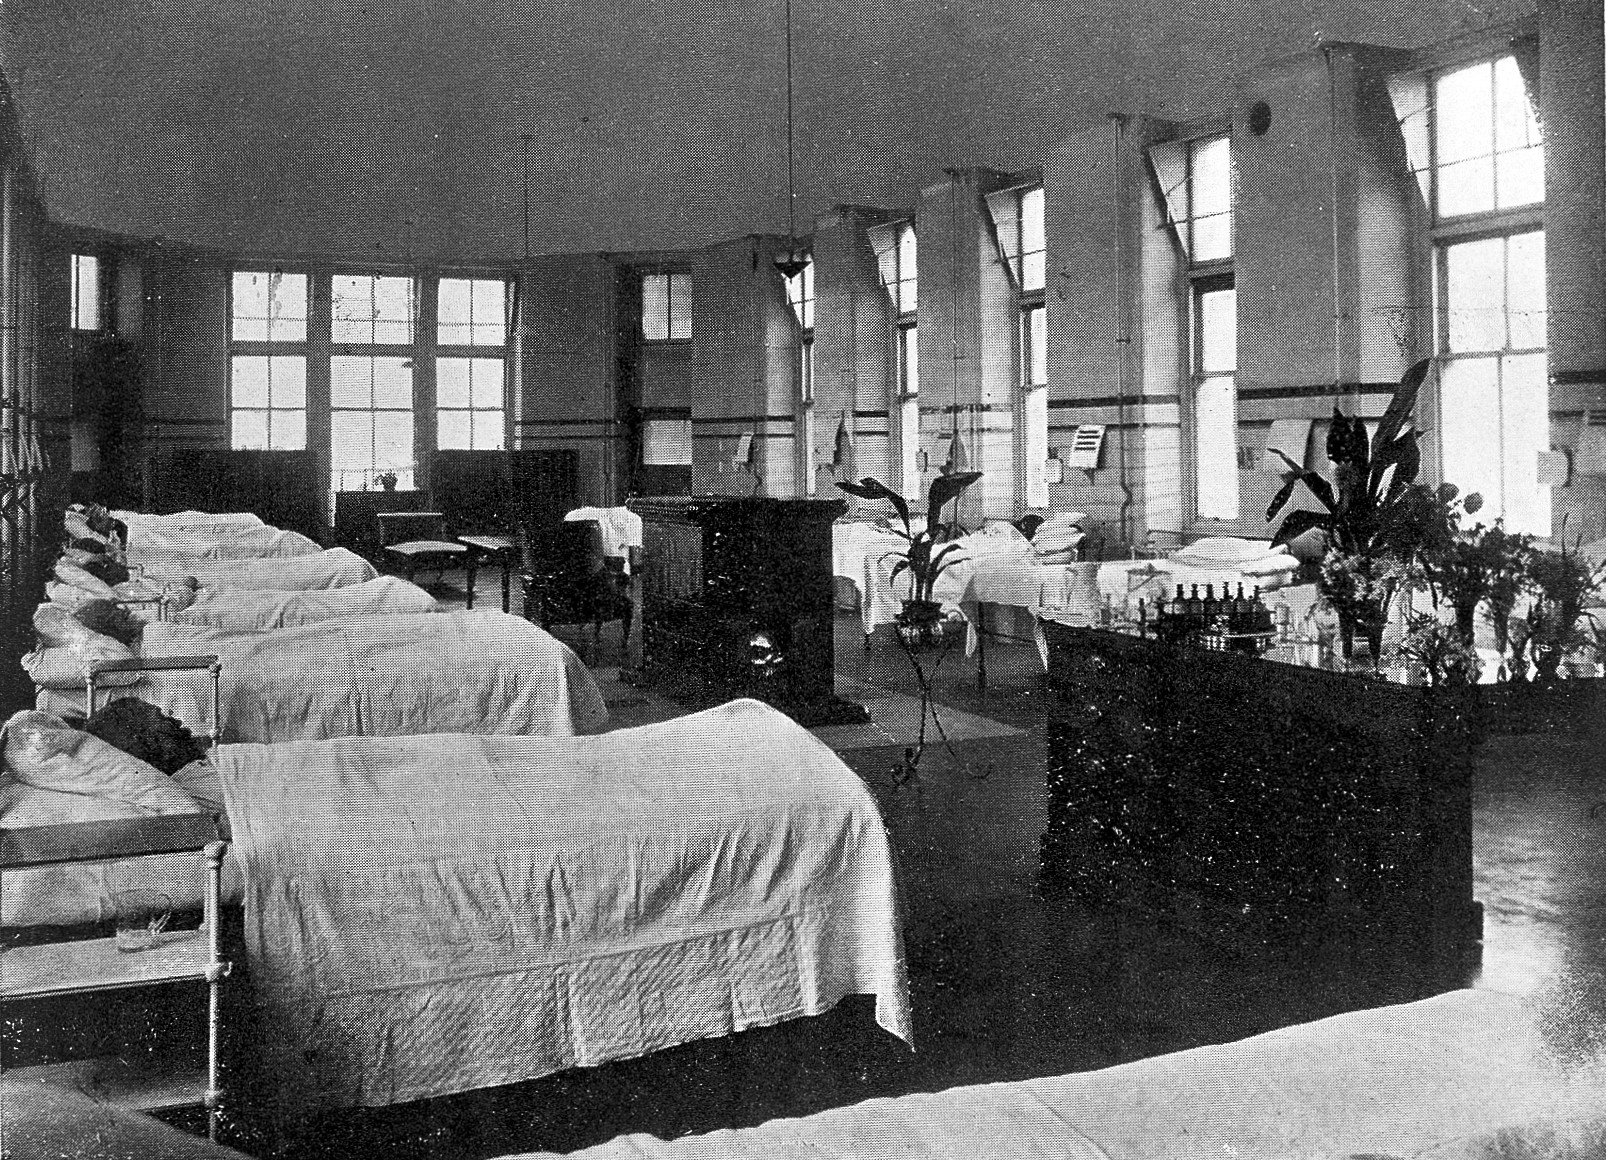 A hospital ward with rows of beds in London, 1916